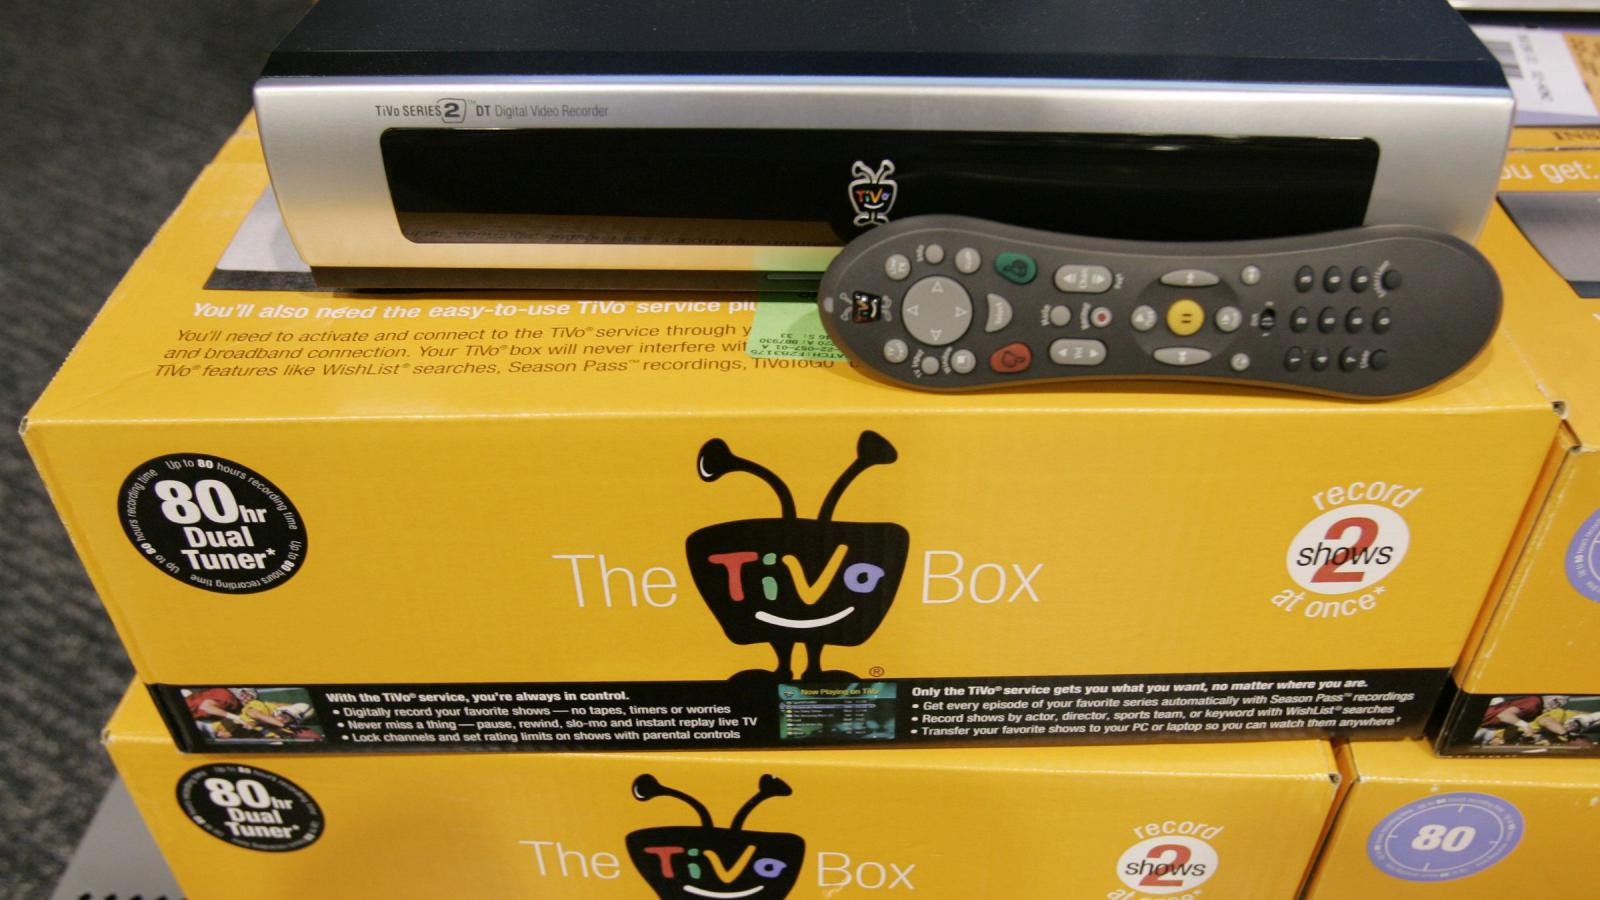 TiVo is still around and it actually has a decent business